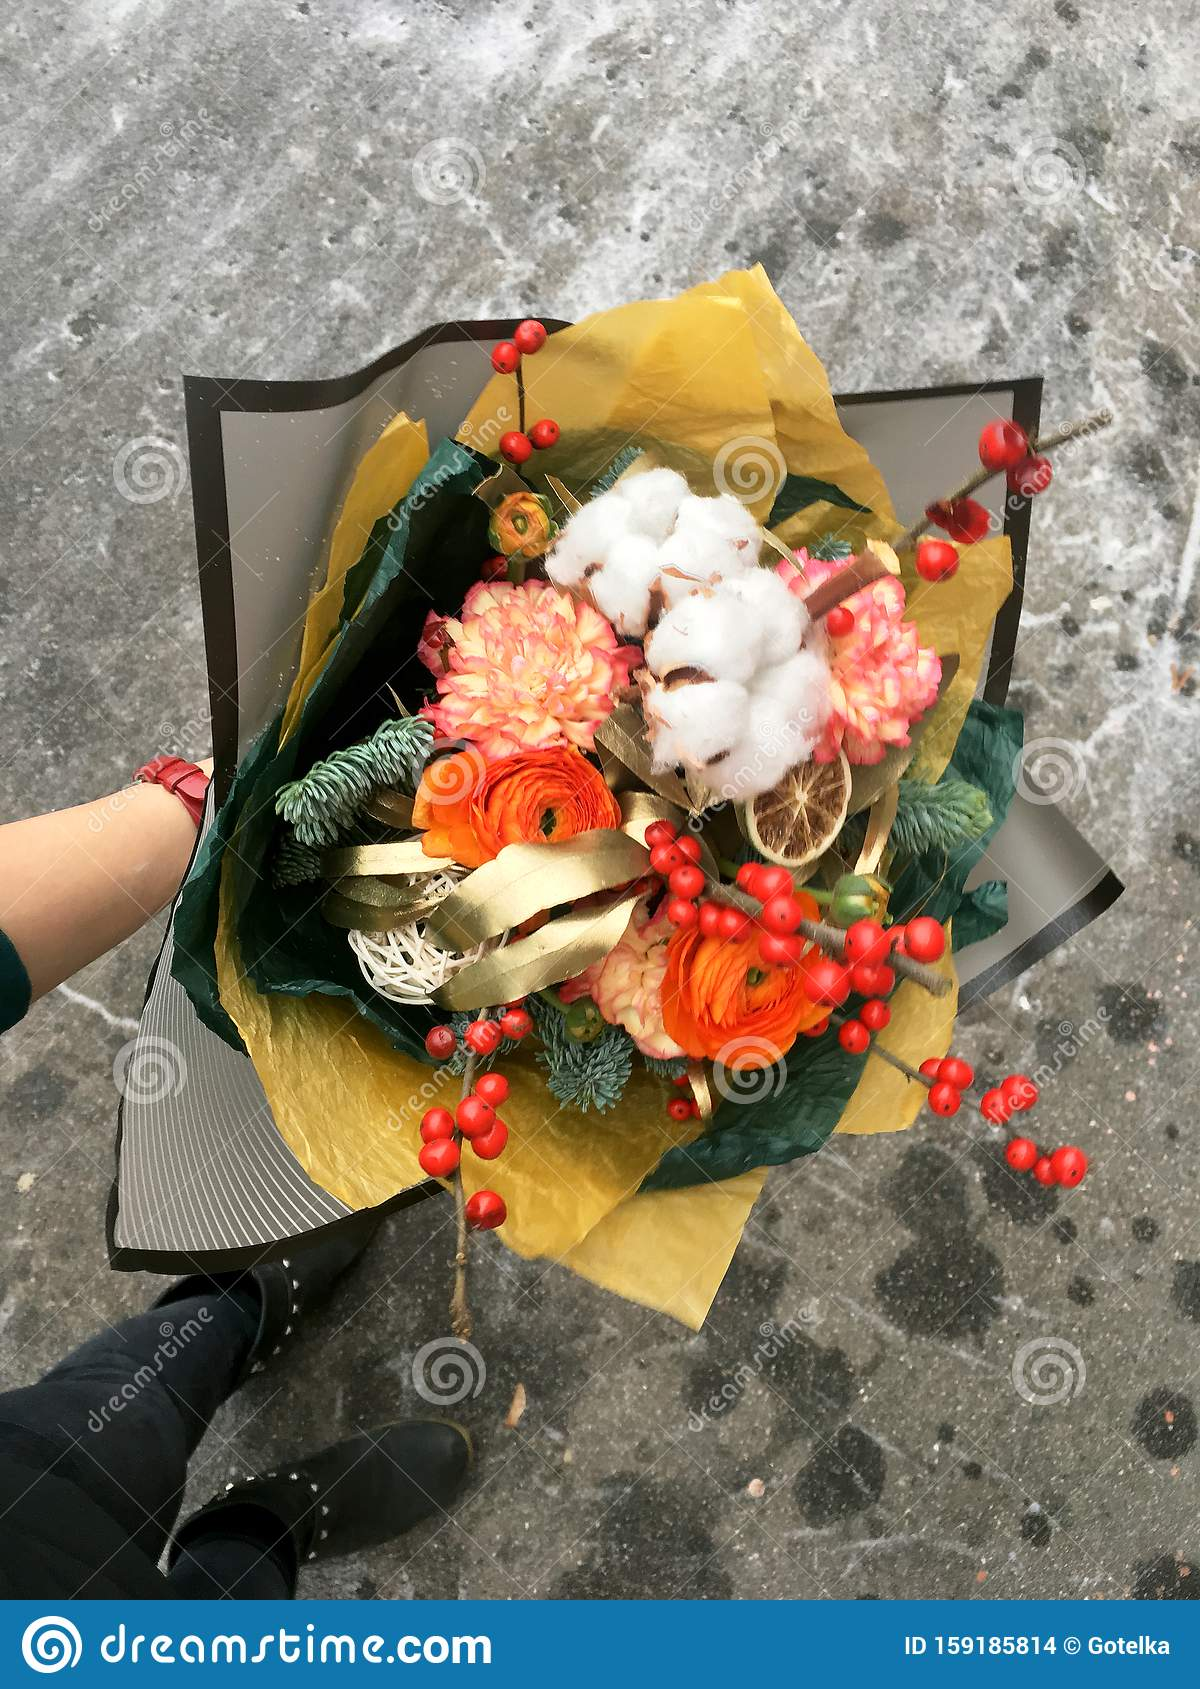 20 408 Winter Flower Bouquet Photos Free Royalty Free Stock Photos From Dreamstime